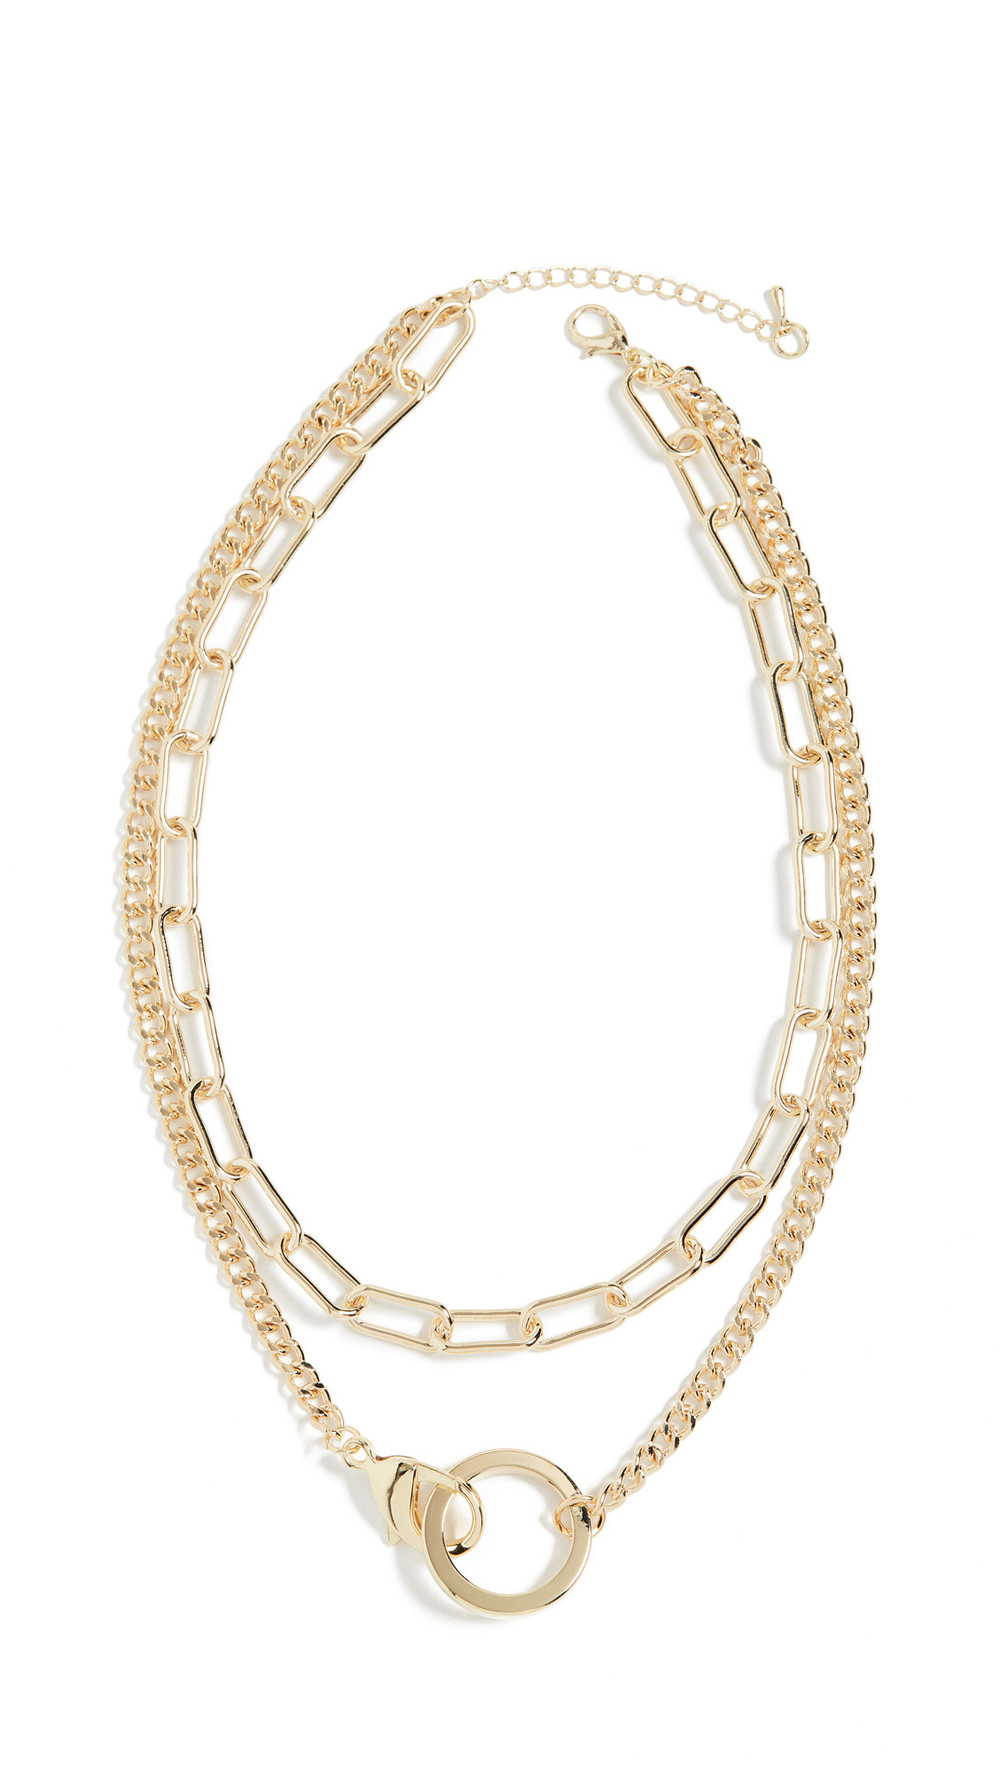 Jules Smith Lobster Claw Pendant Necklace in gold / yellow